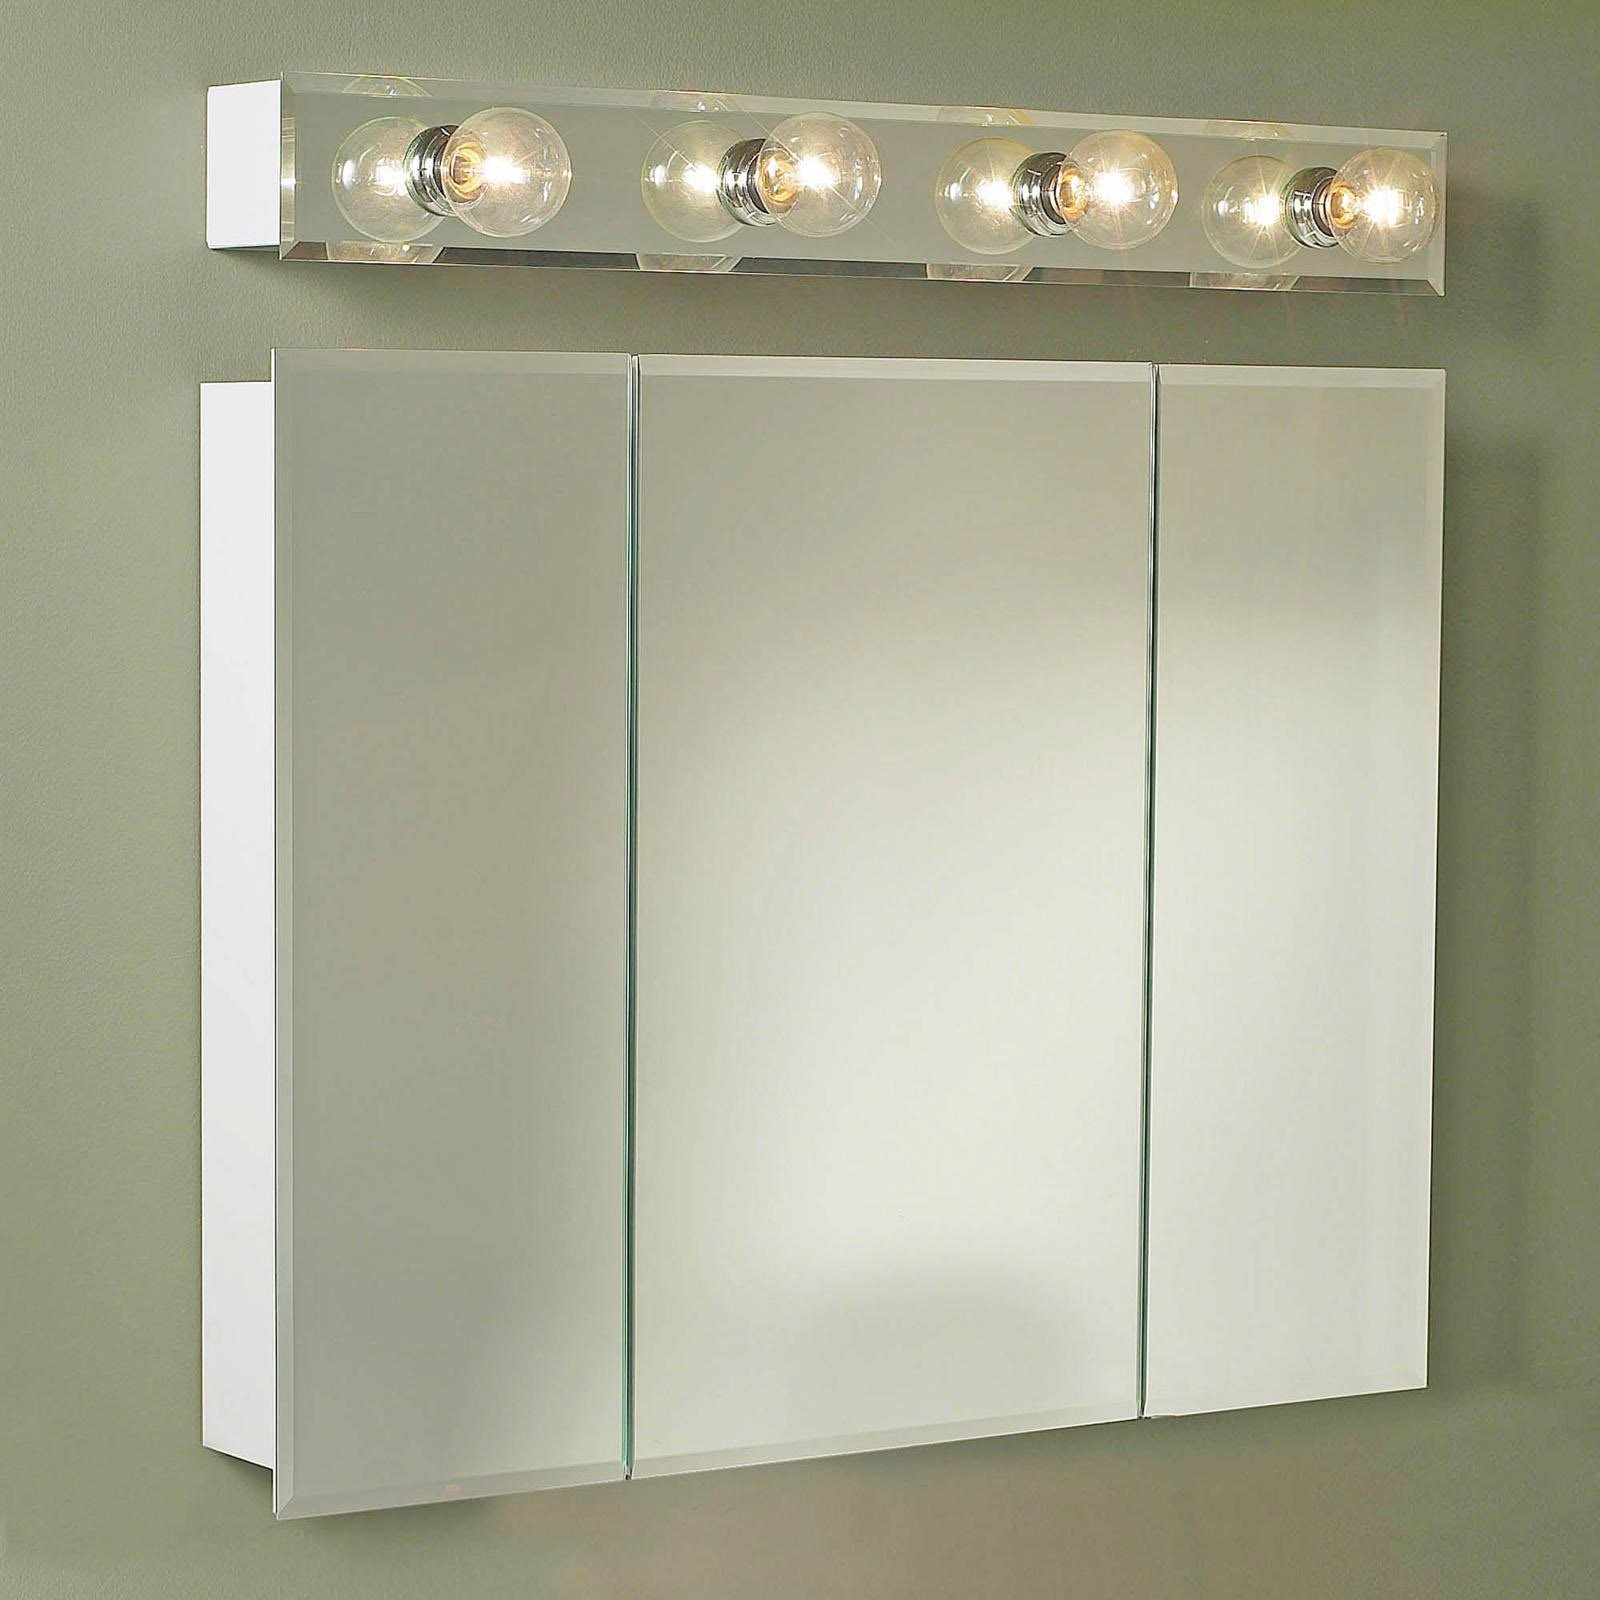 luxury lowes Medicine Cabinets With mirror door plus four lights on gray wall